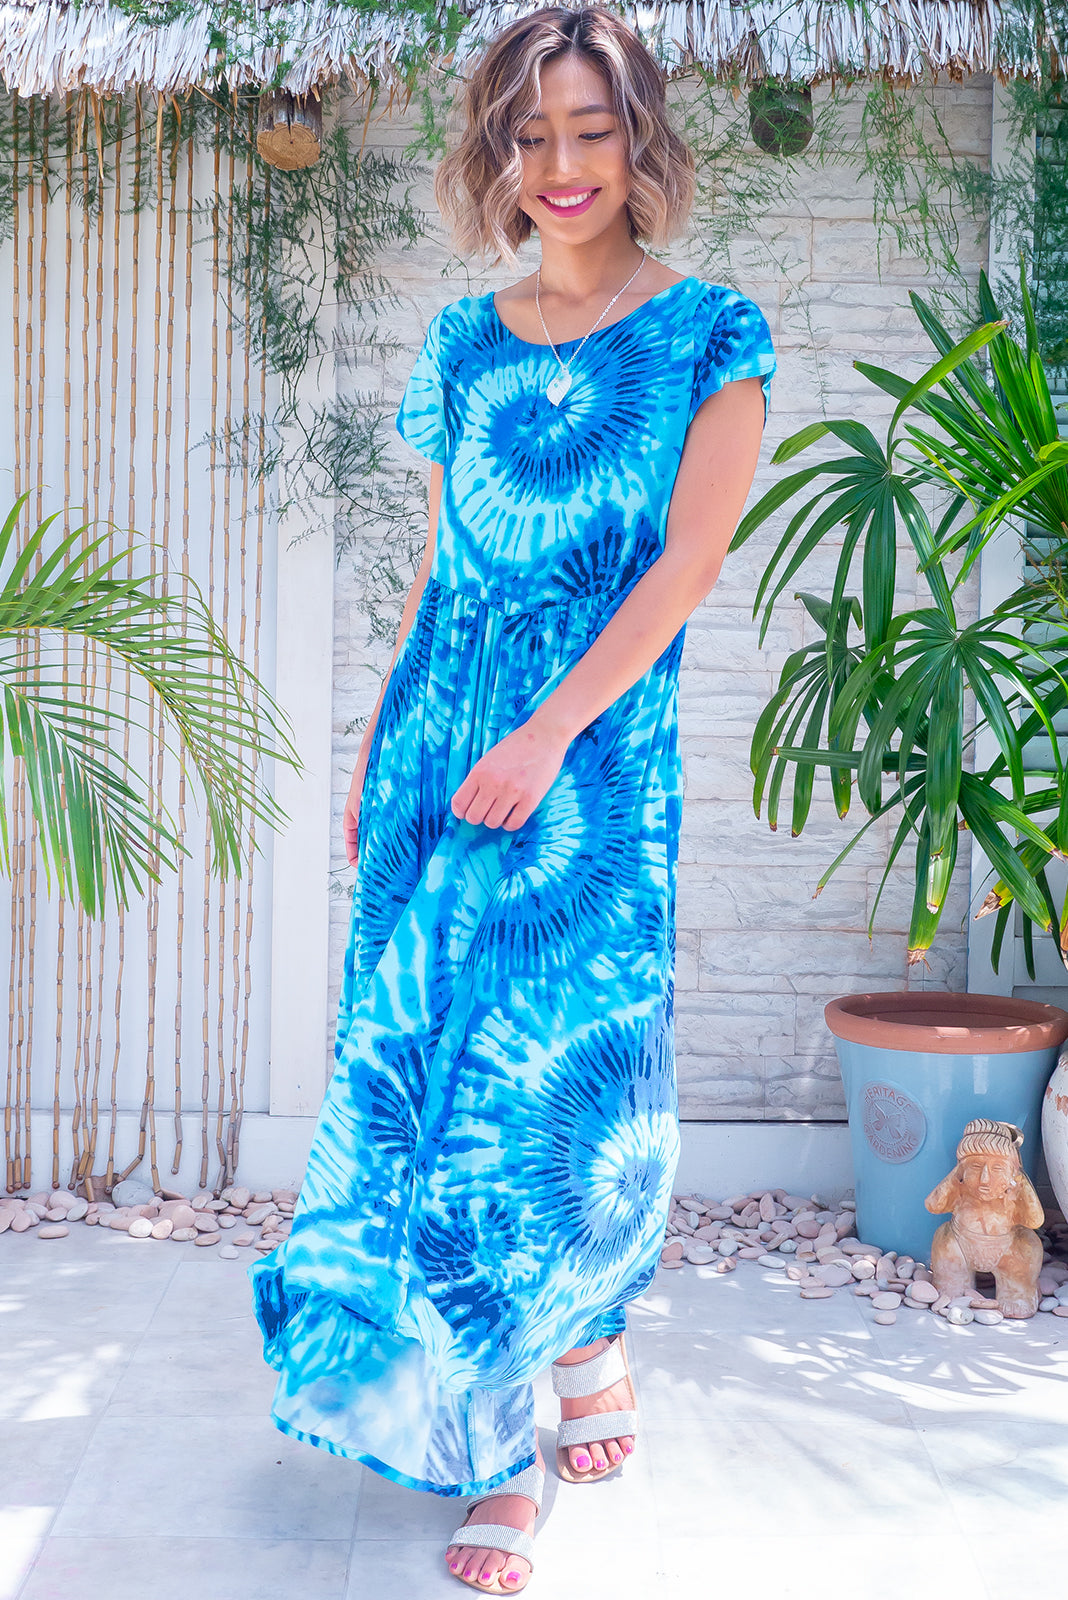 The Cocoloco Ocean Ripple Dress is a fun summer dress featuring lightweight/non-stretch fabric, short sleeves, side pockets and woven 100% rayon in vibrant blue swirl print.